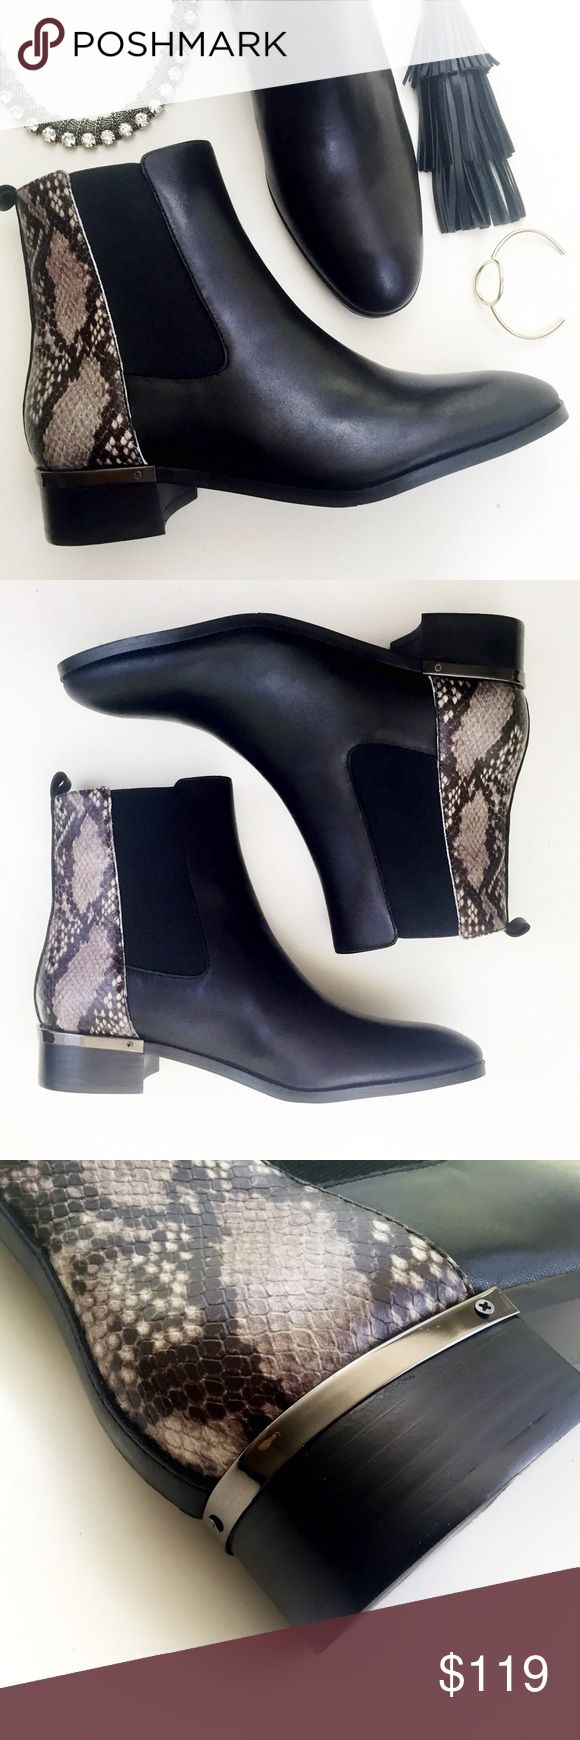 """Black and Snake Print Colorblock Chelsea Boots Details: • Size 9 • Leather with elastic panels • Pull on style • 1.25"""" stacked heel accented with a gunmetal plate • Brand new in box  06211609 Ivanka Trump Shoes Ankle Boots & Booties"""